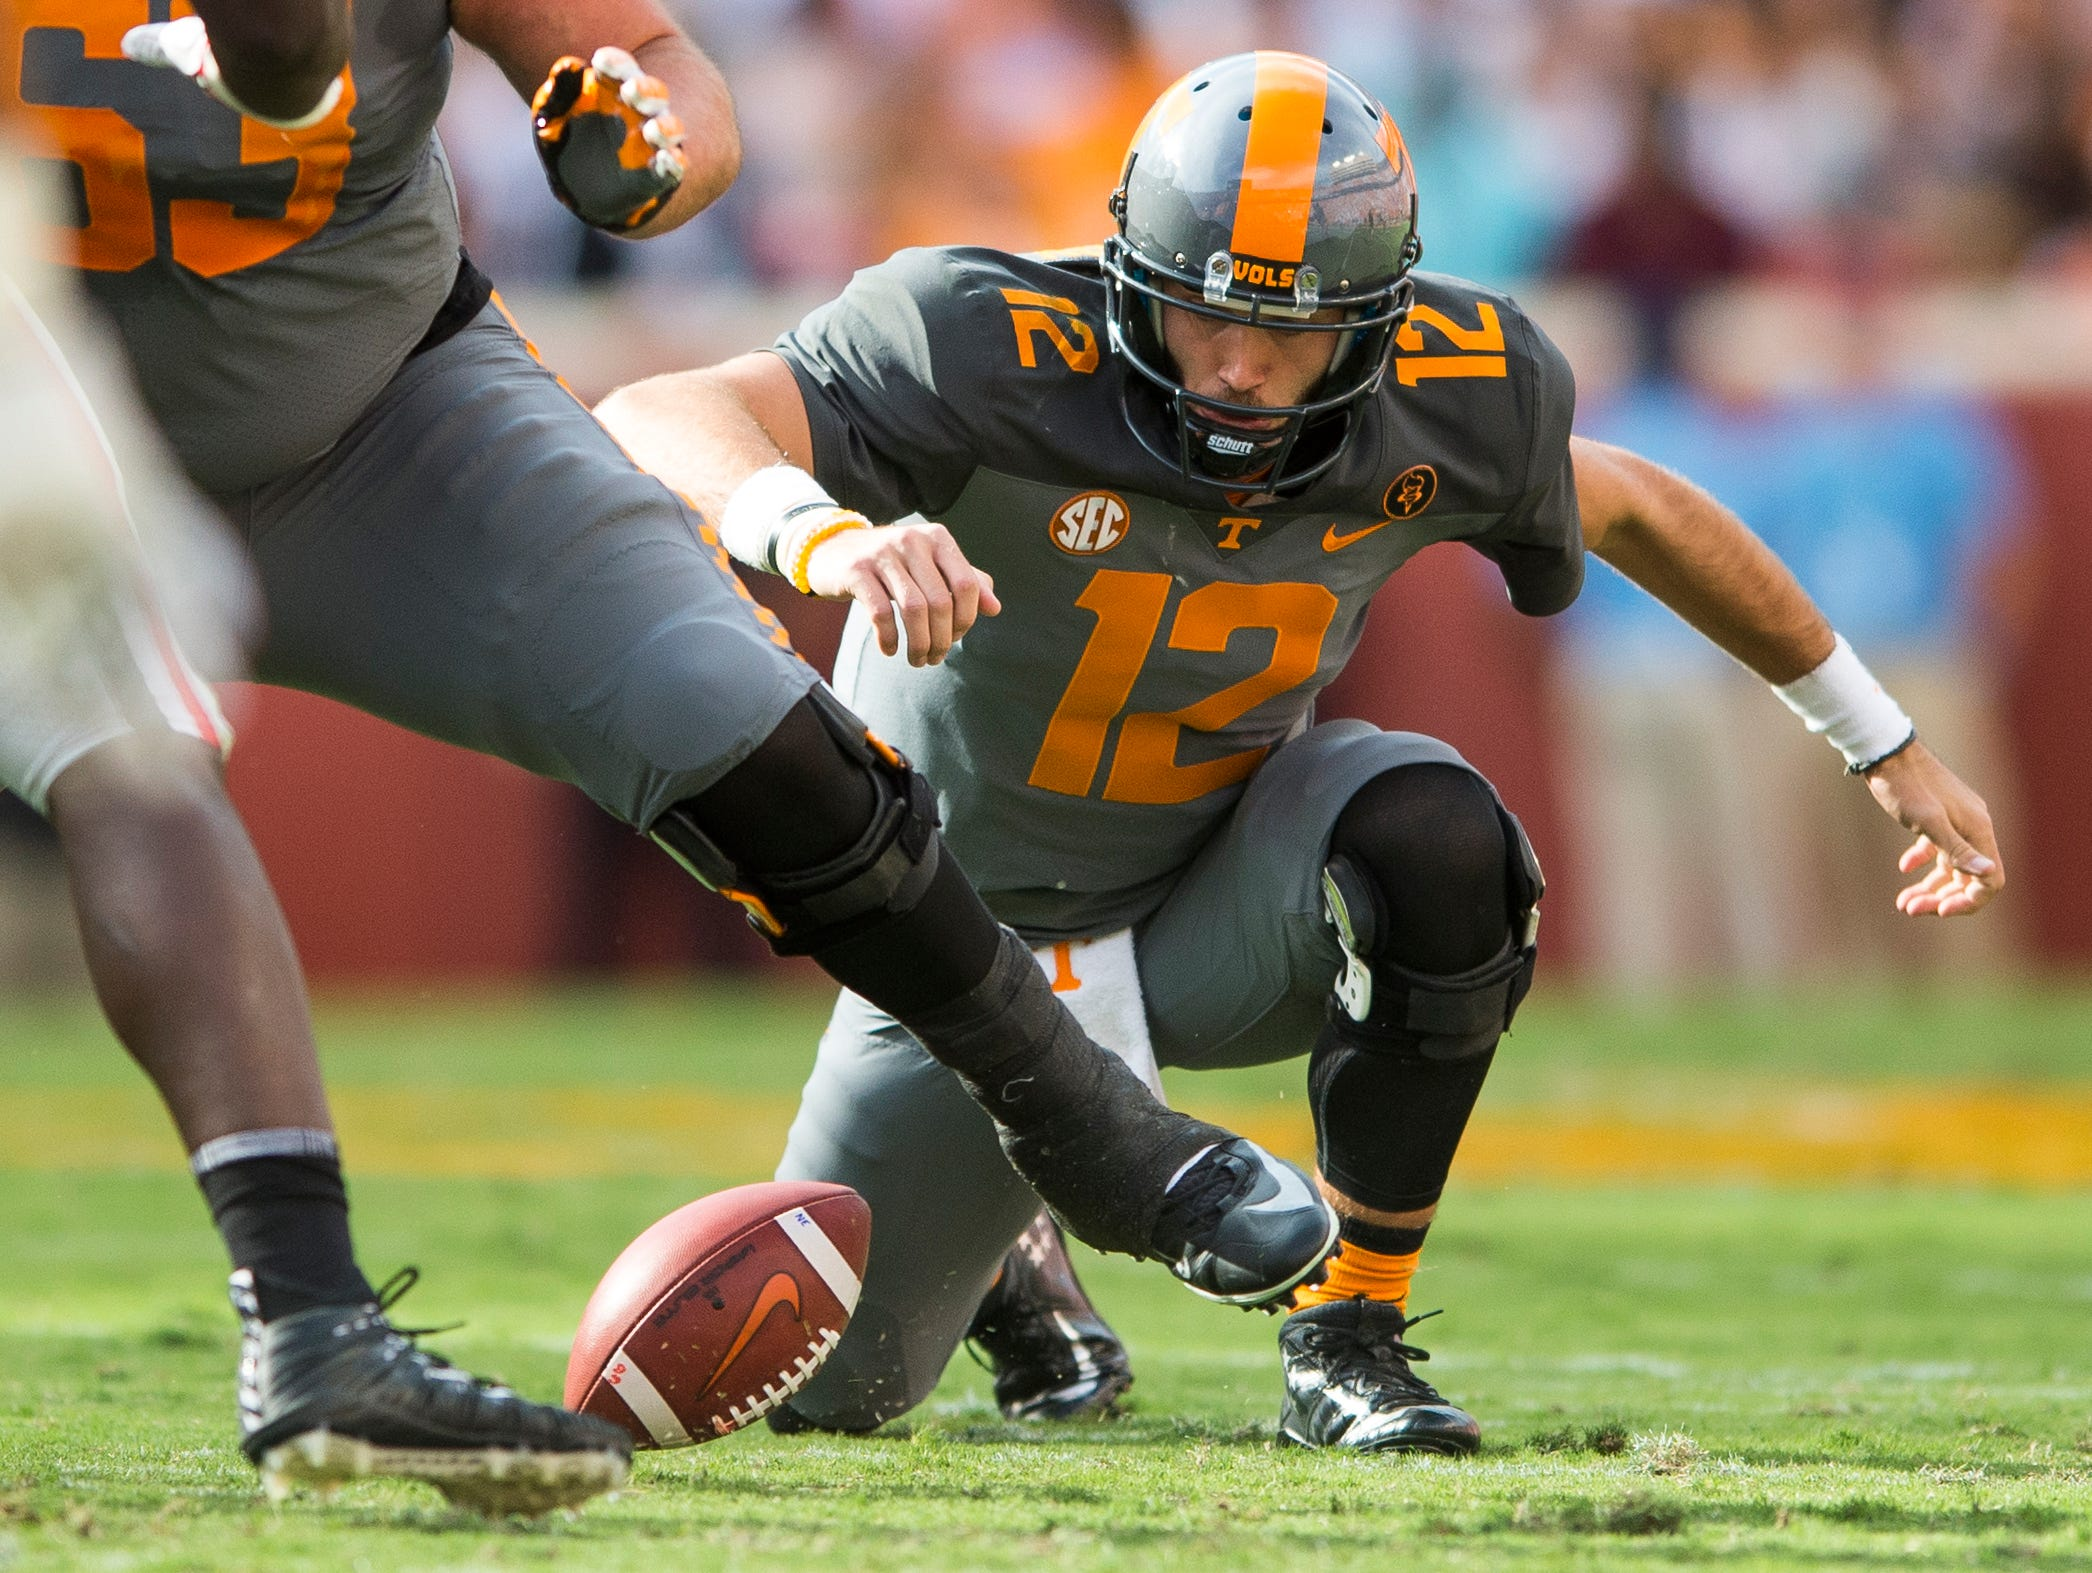 Tennessee quarterback Quinten Dormady (12) fumbles the snap, which would then be recovered by Georgia, during Tennessee's game against Georgia in Neyland Stadium on Saturday, Sept. 30, 2017.